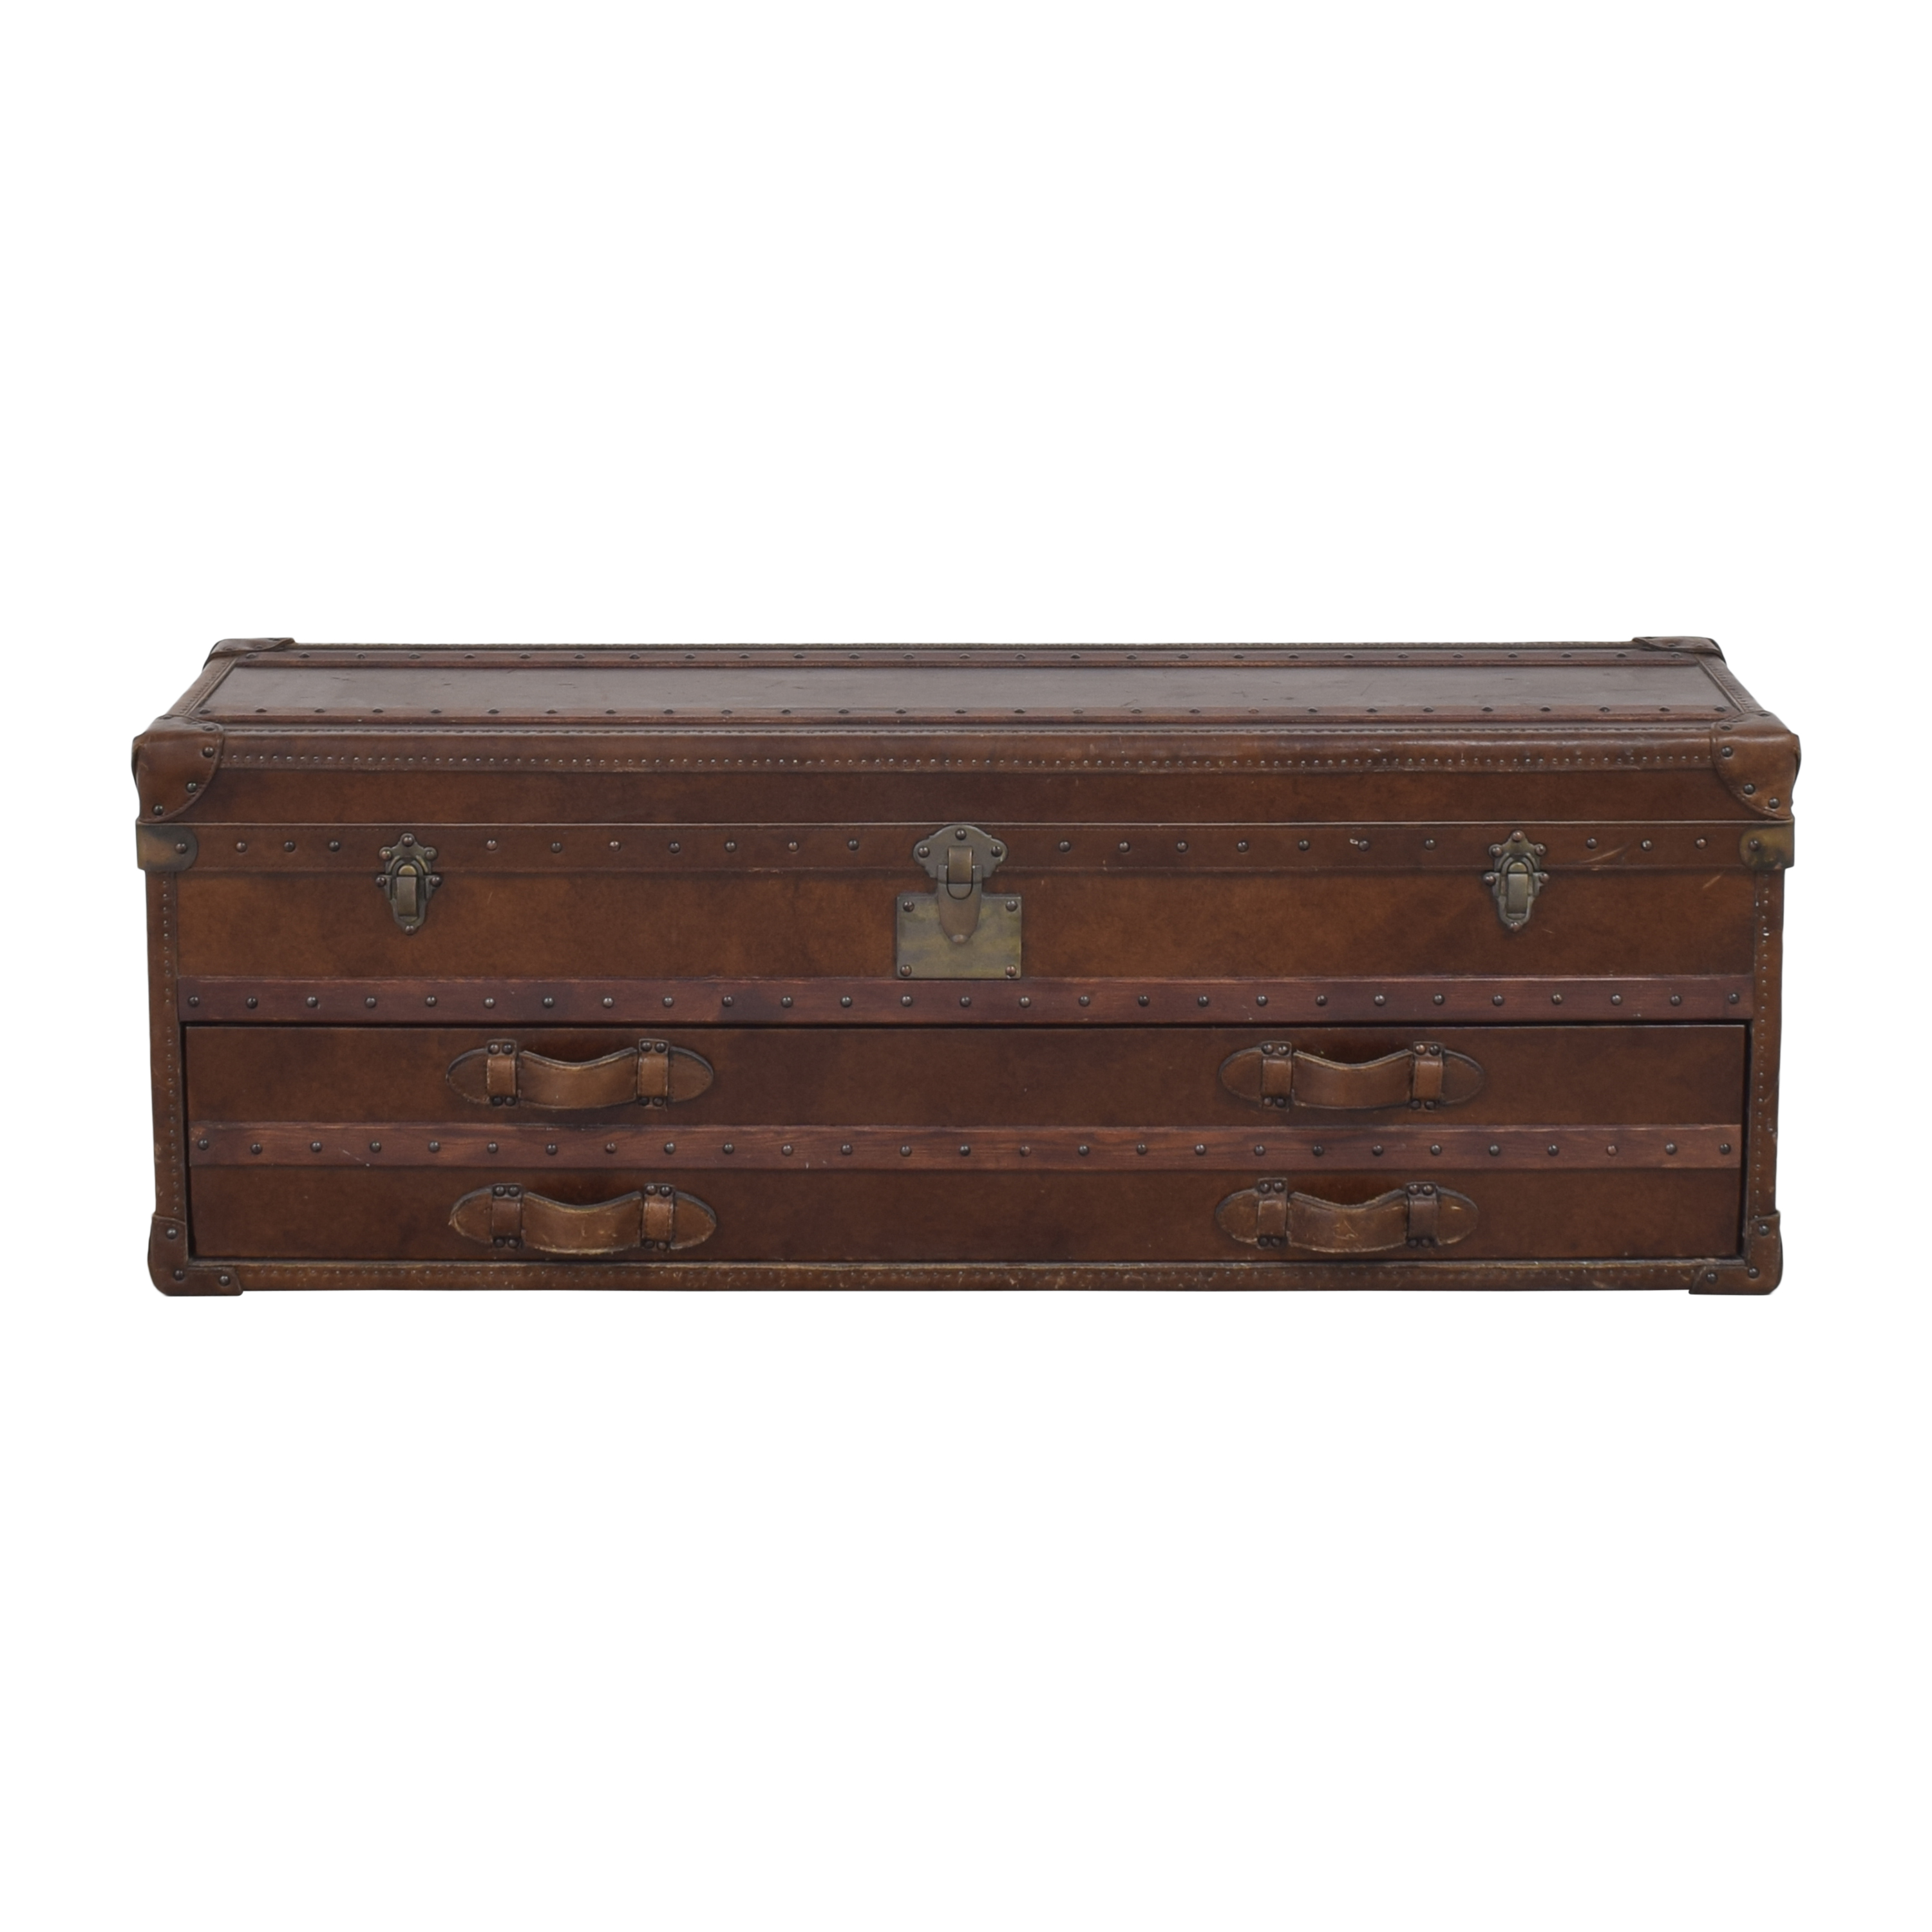 Restoration Hardware Restoration Hardware Mayfair Steamer Trunk Low Chest